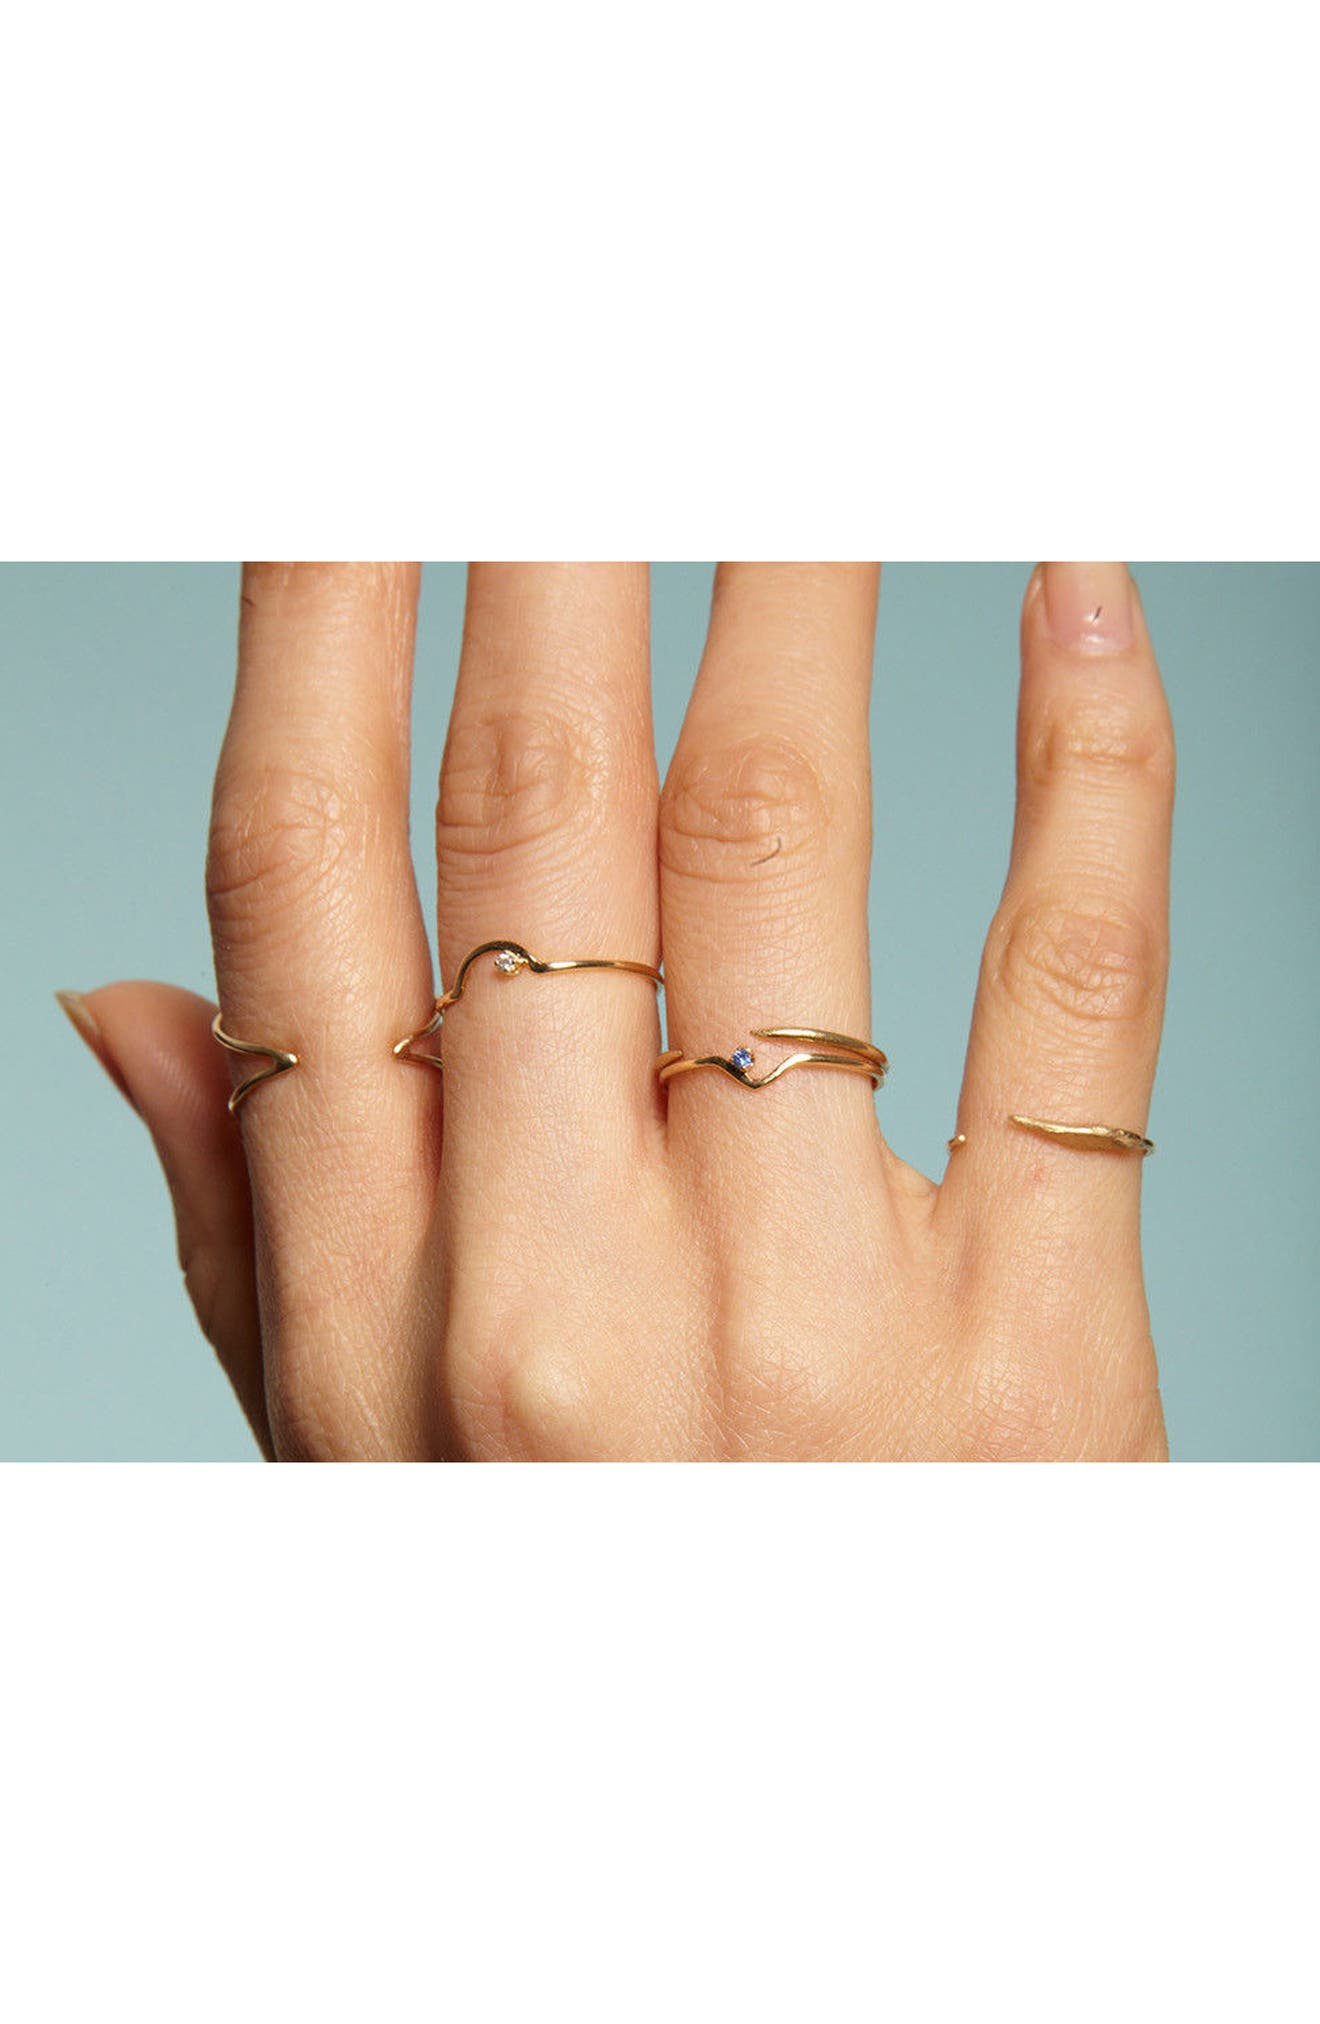 Triangle Lineage Black Diamond Ring,                             Alternate thumbnail 2, color,                             YELLOW GOLD